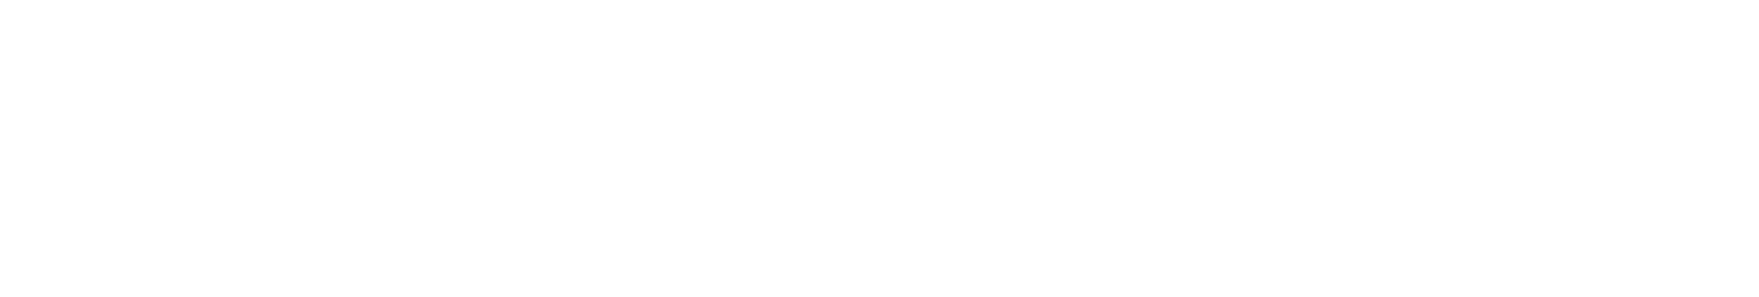 kyteway-technology-services-private-limited-logo